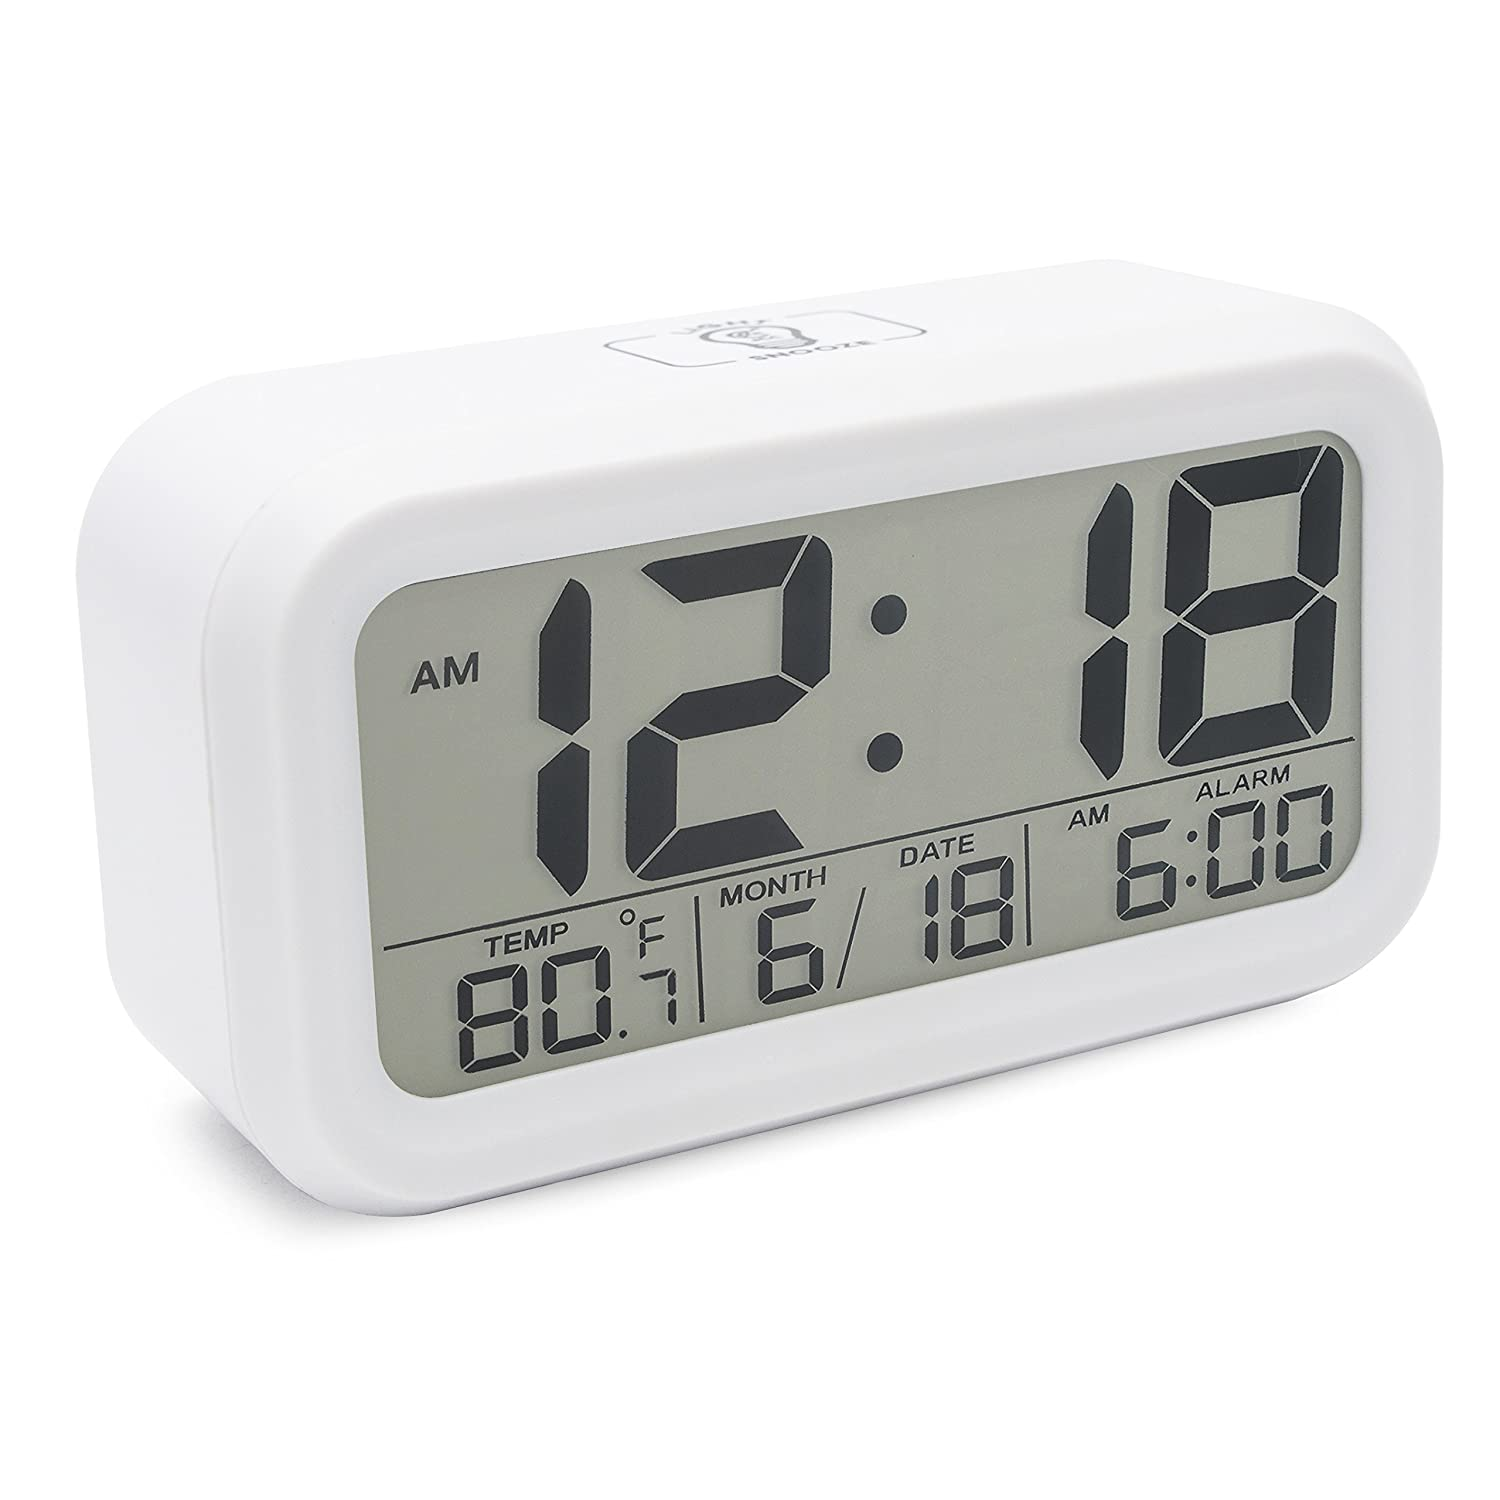 JCC Innovation Smart Light Technology Night Vision Easy Read Bold Number Display Digital Alarm Clock with Snooze, Date and Temperature Display - Battery Operated (Black) JCC_AL_D_1019